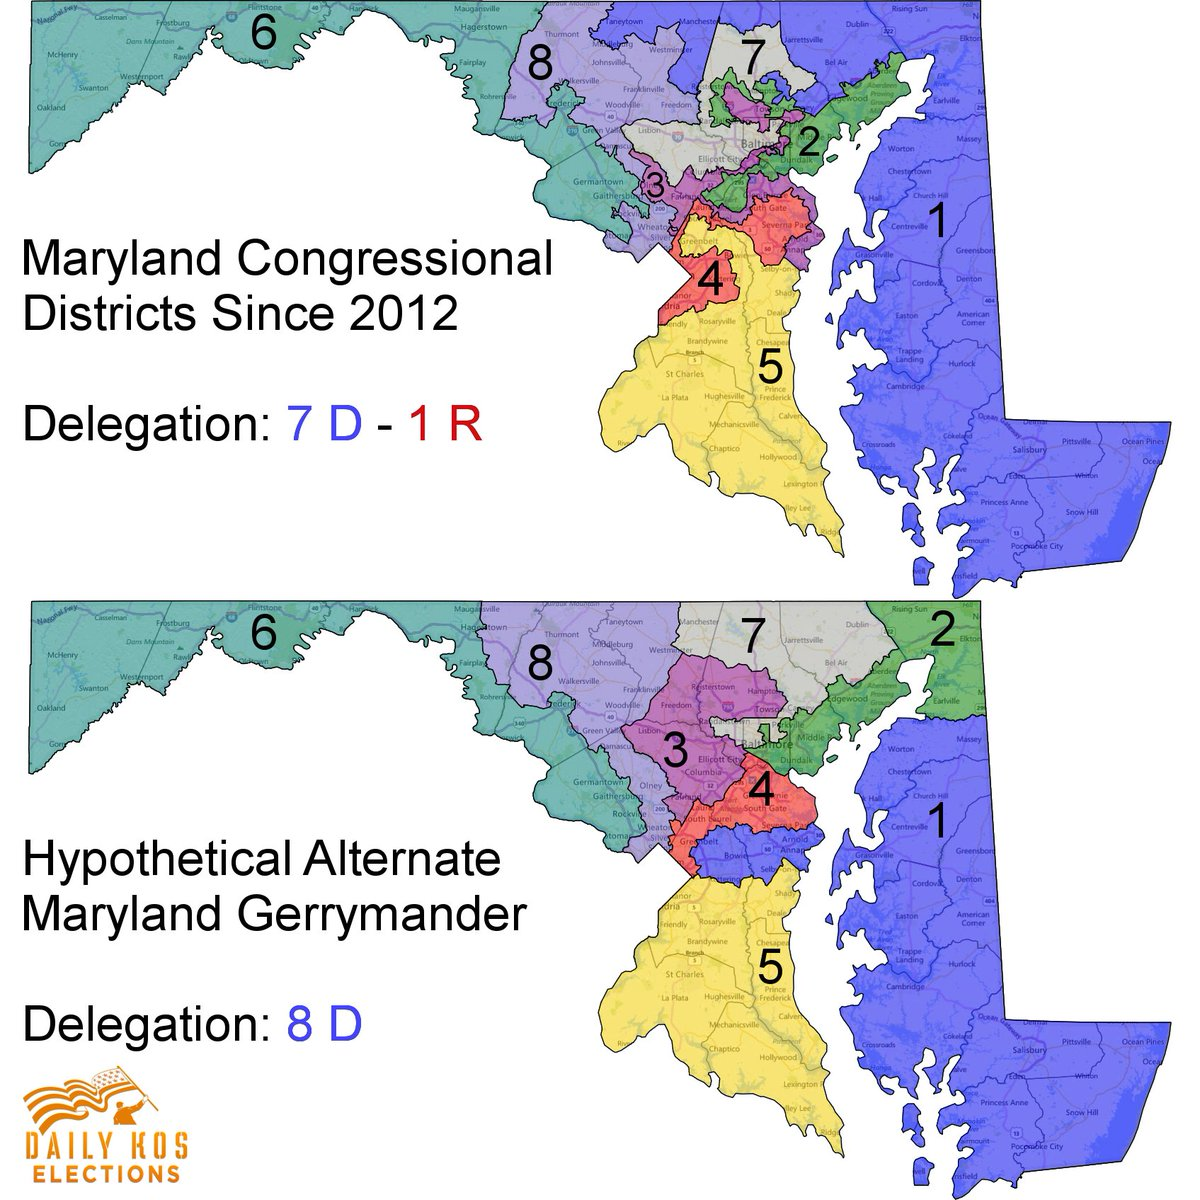 stephen wolf on twitter which of these congressional maps is the more extreme partisan gerrymander its actually the second one which eliminates the